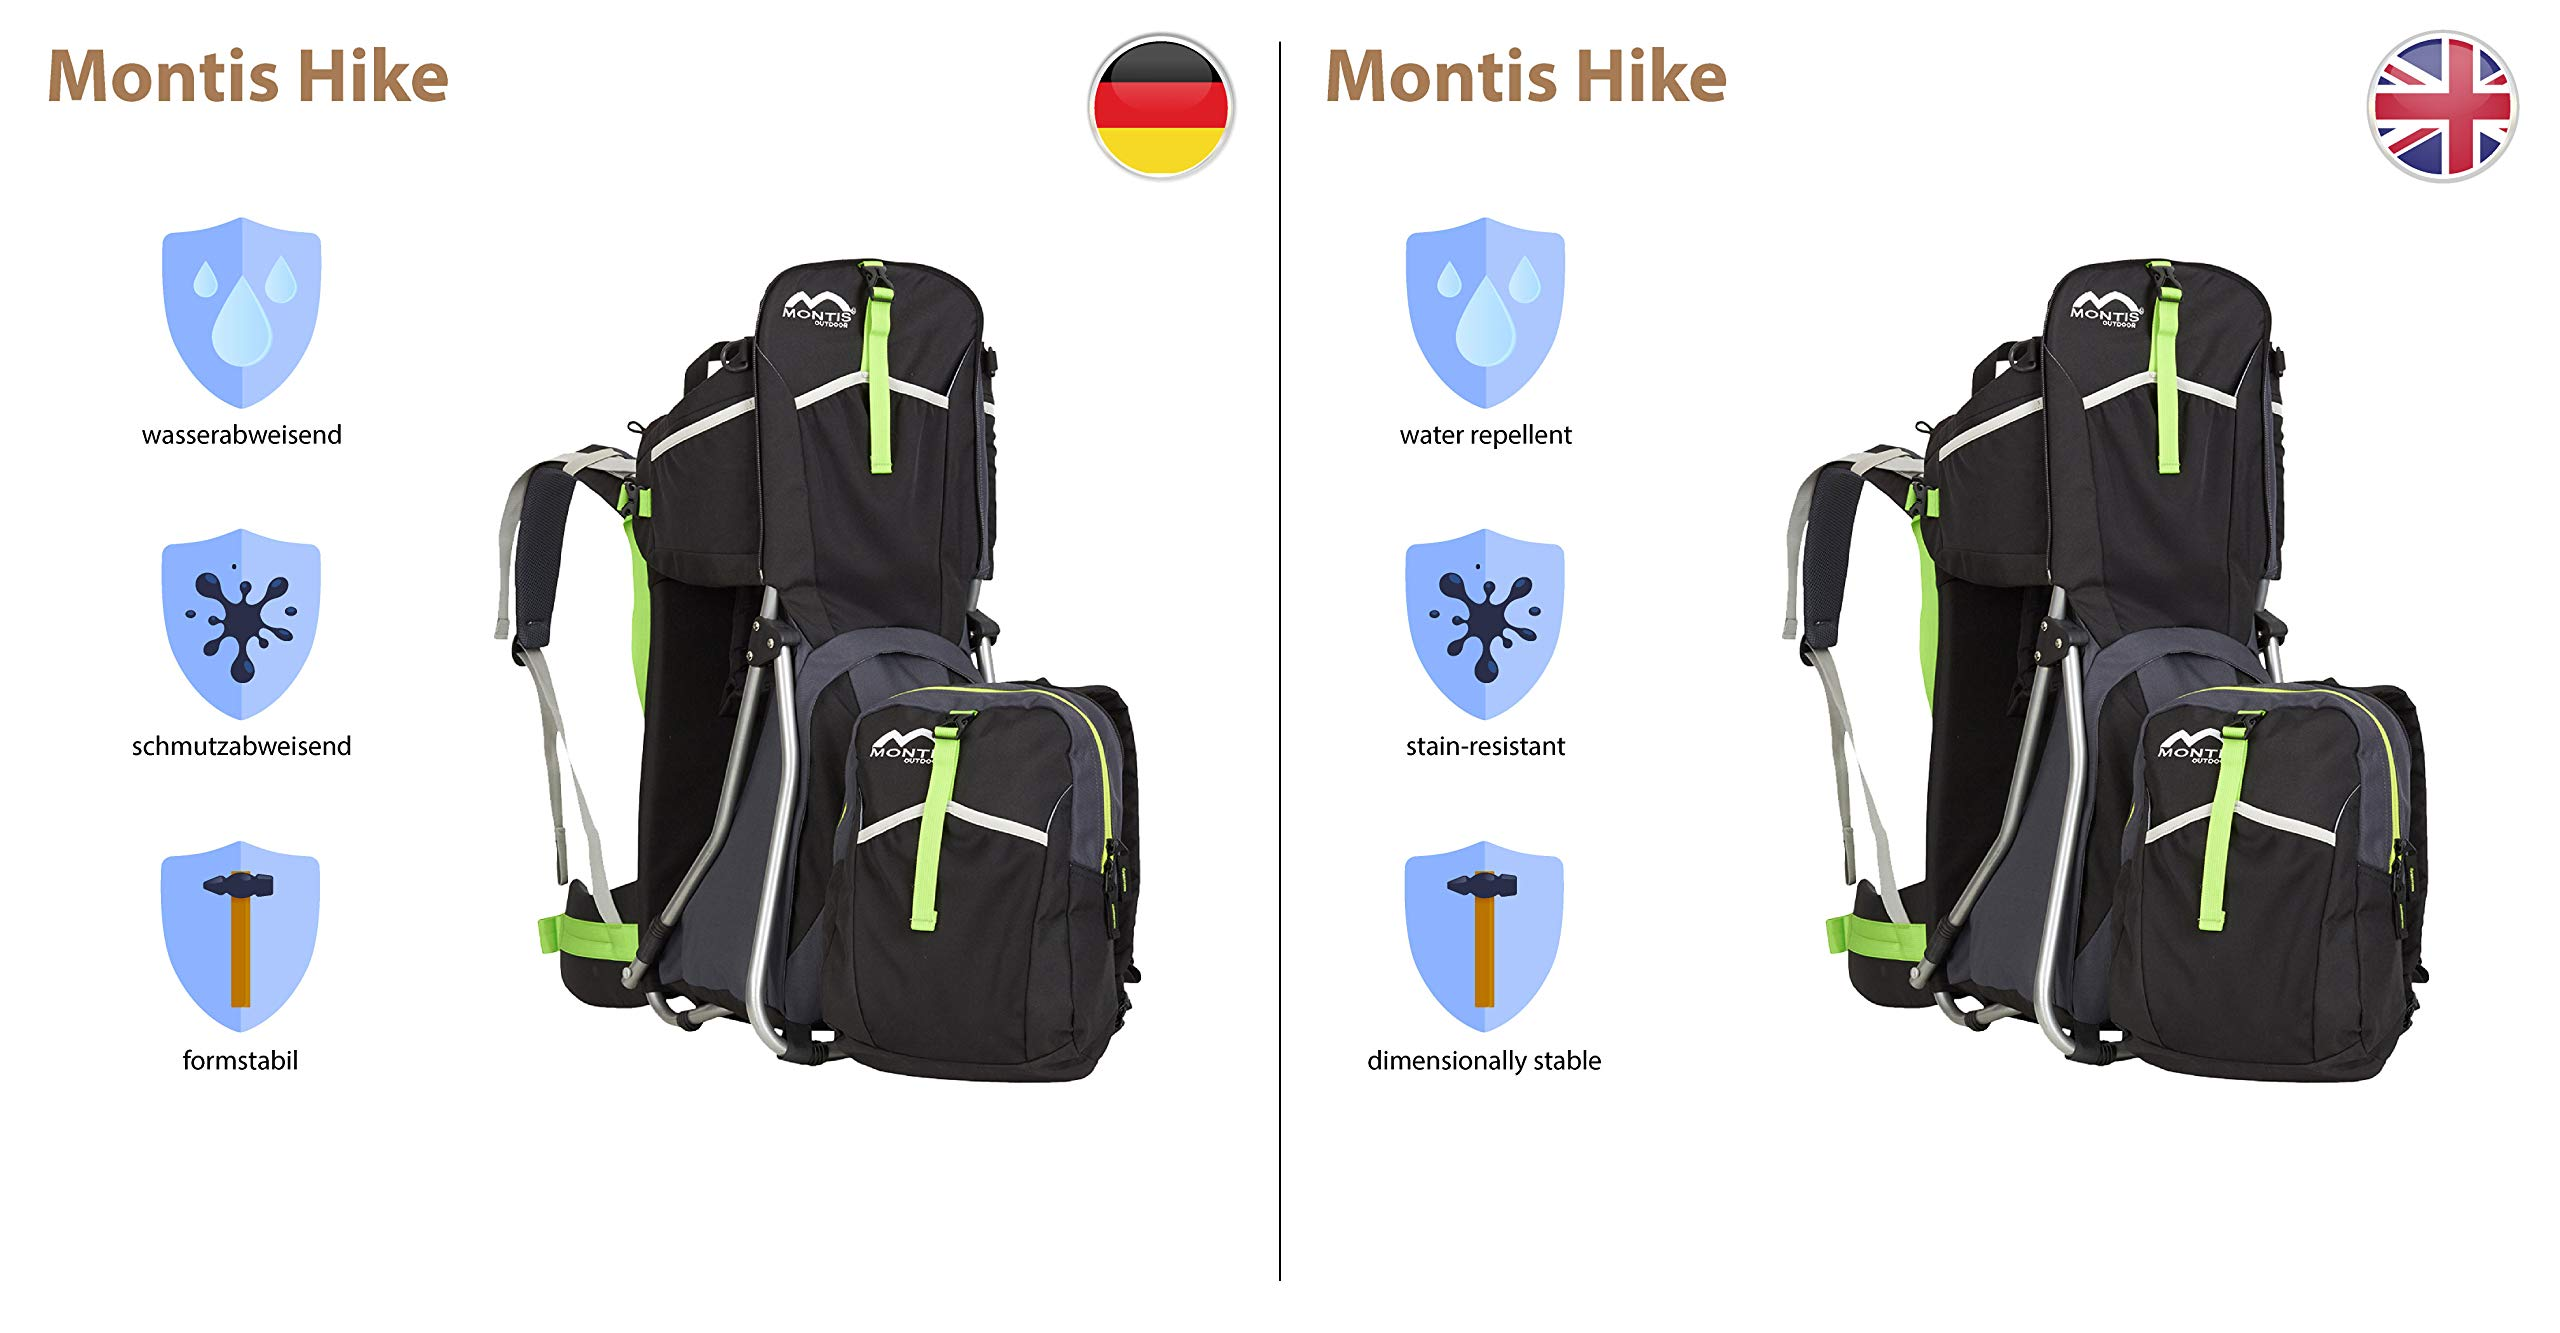 MONTIS HIKE, Premium Back Baby/Child Carrier, Up to 25kg, (black) M MONTIS OUTDOOR 89cm high, 37cm wide | up to 25kg | various colours | 28L seat bag Laminated and dirt-repellant outer material | approx. 2.2kg (without extras) Fully-adjustable, padded 5-point child's safety harness | plush lining, raised wind guard, can be filled from both sides | forehead cushion 5